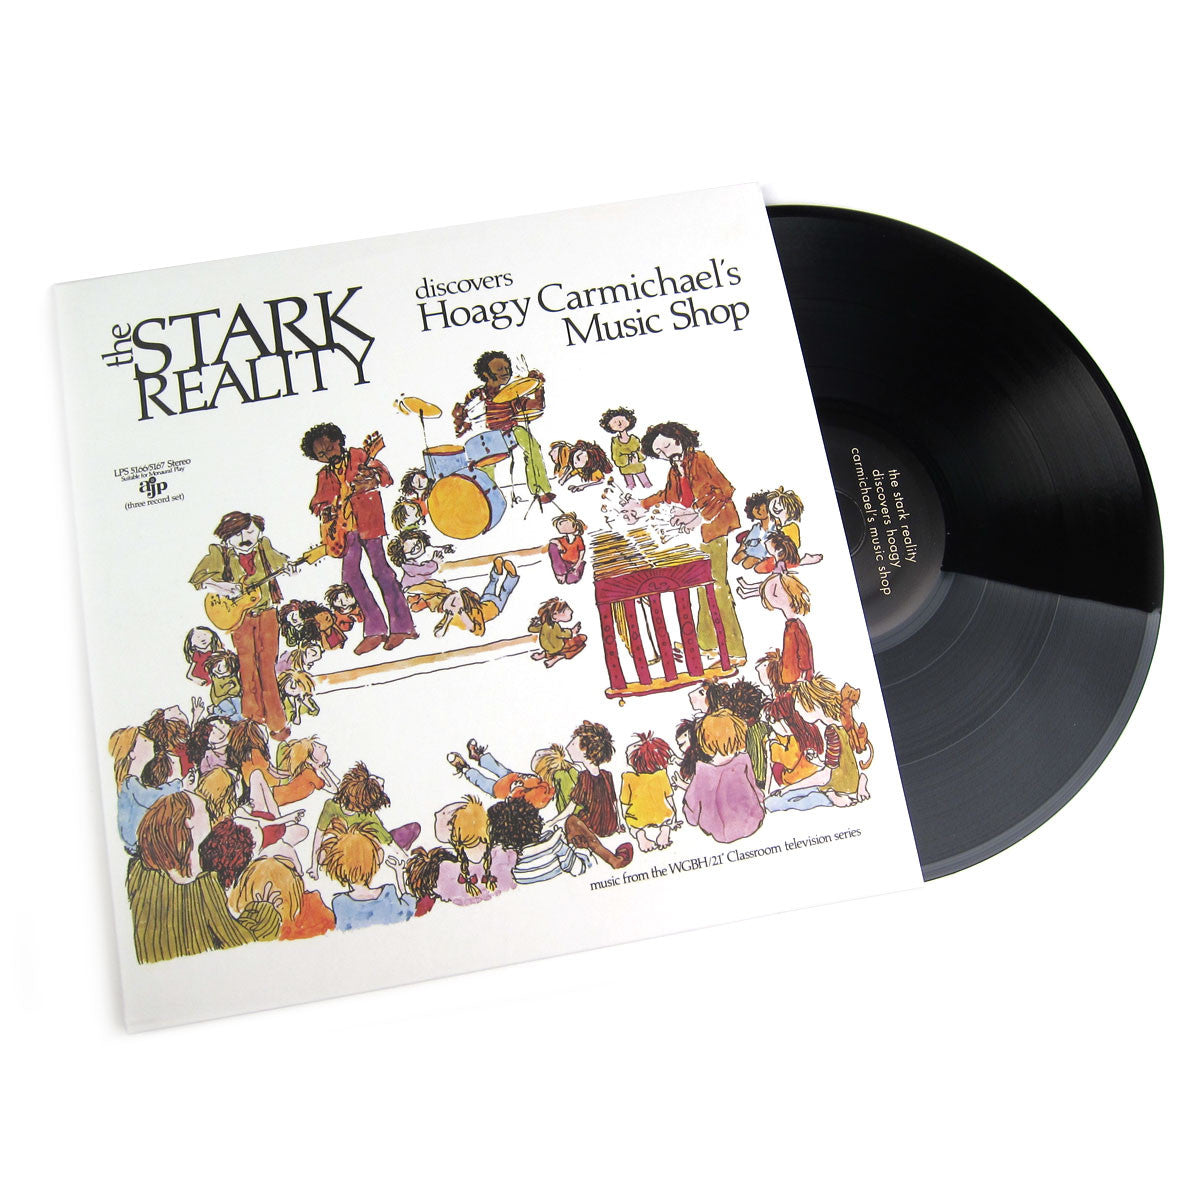 Stark Reality: Discovers Hoagy Carmichael's Music Shop Vinyl 3LP